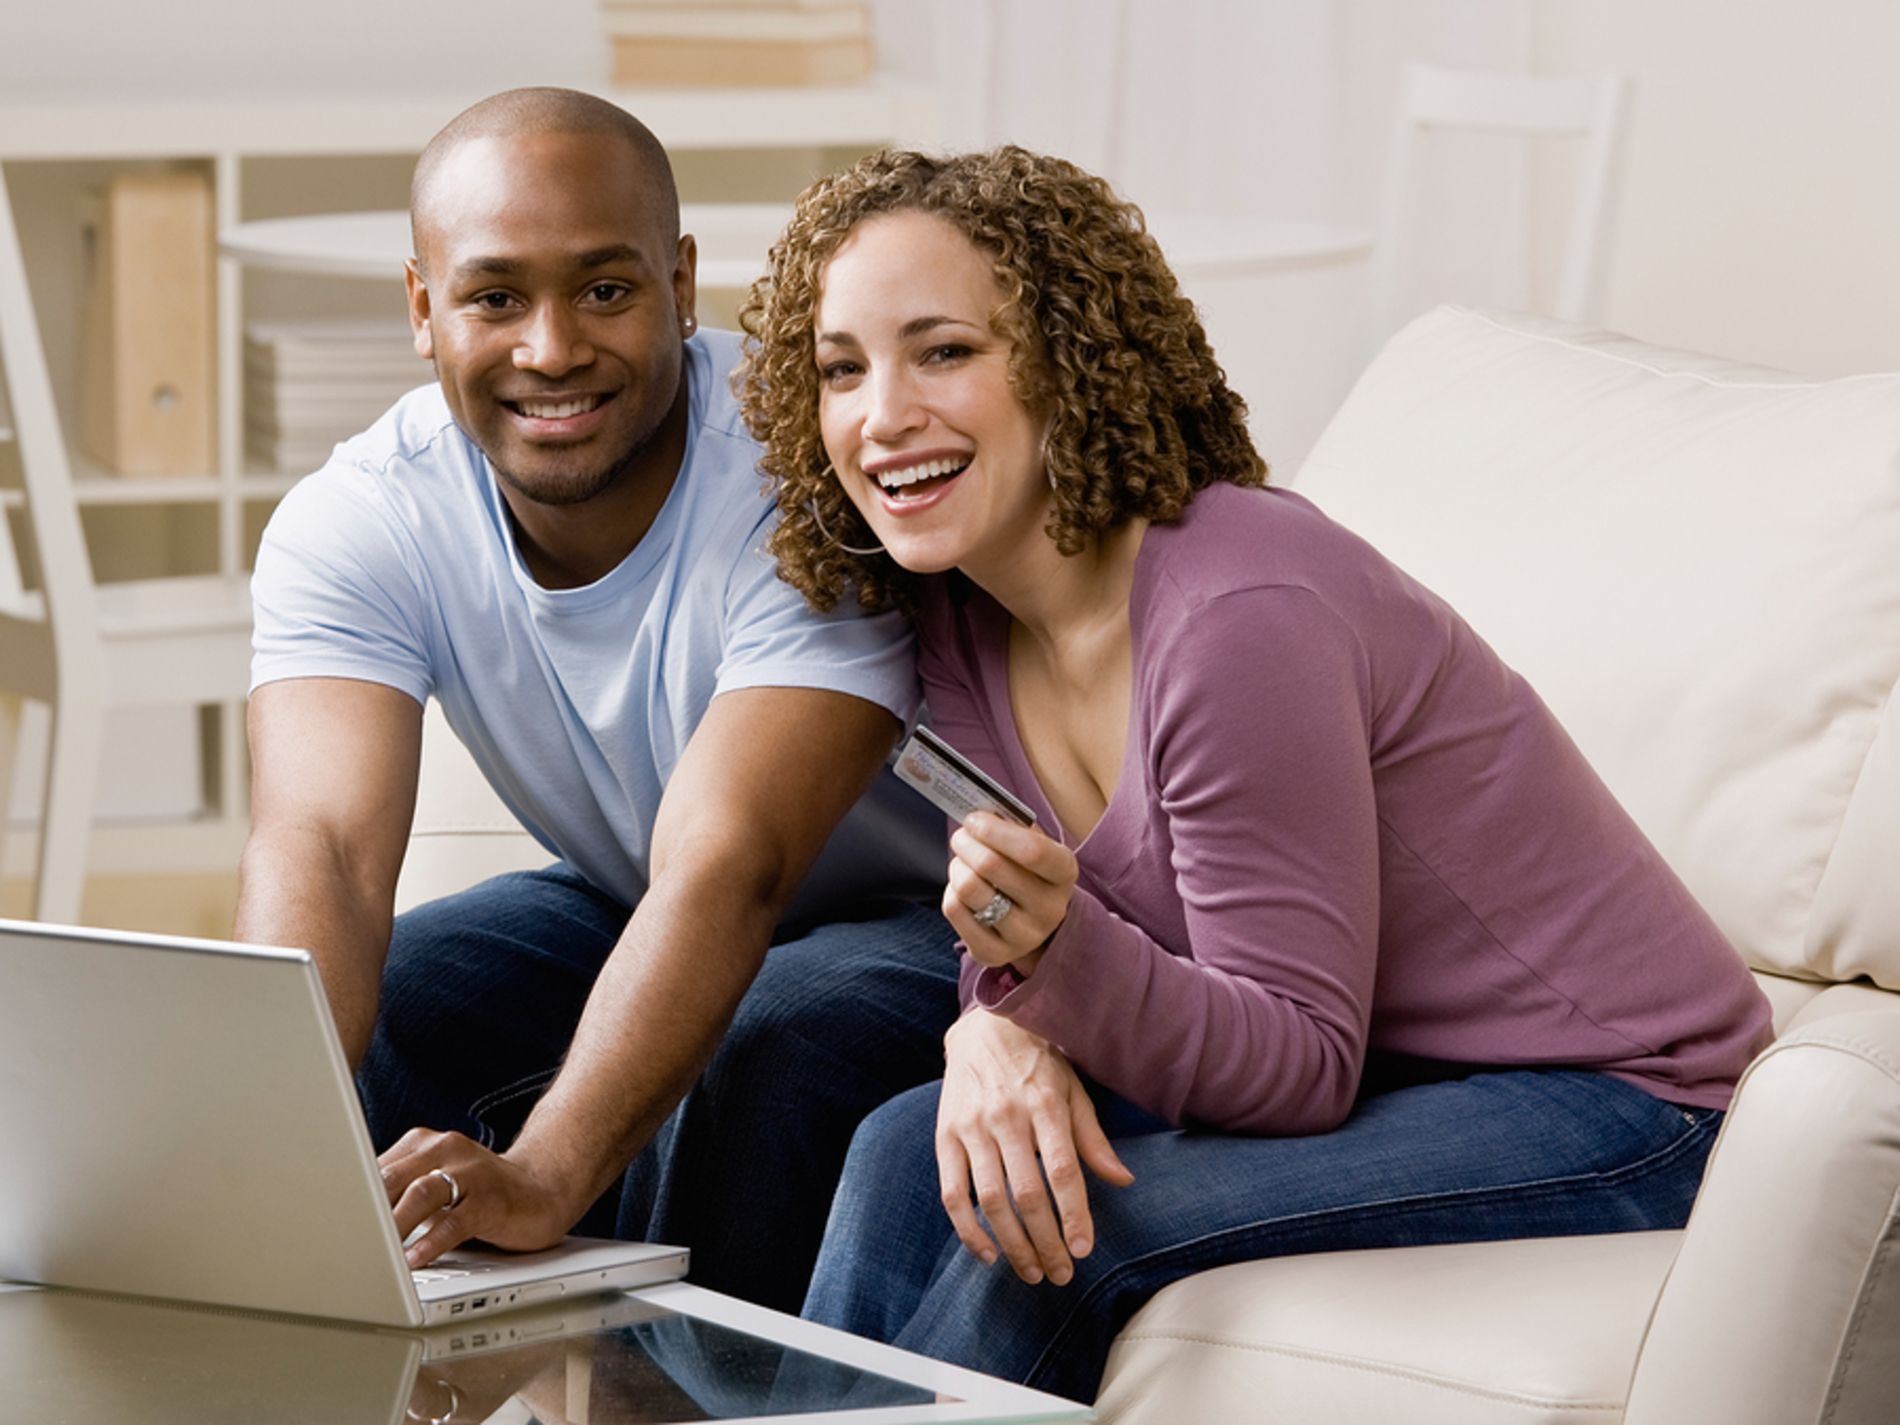 Couple using a credit card to purchase an item online.